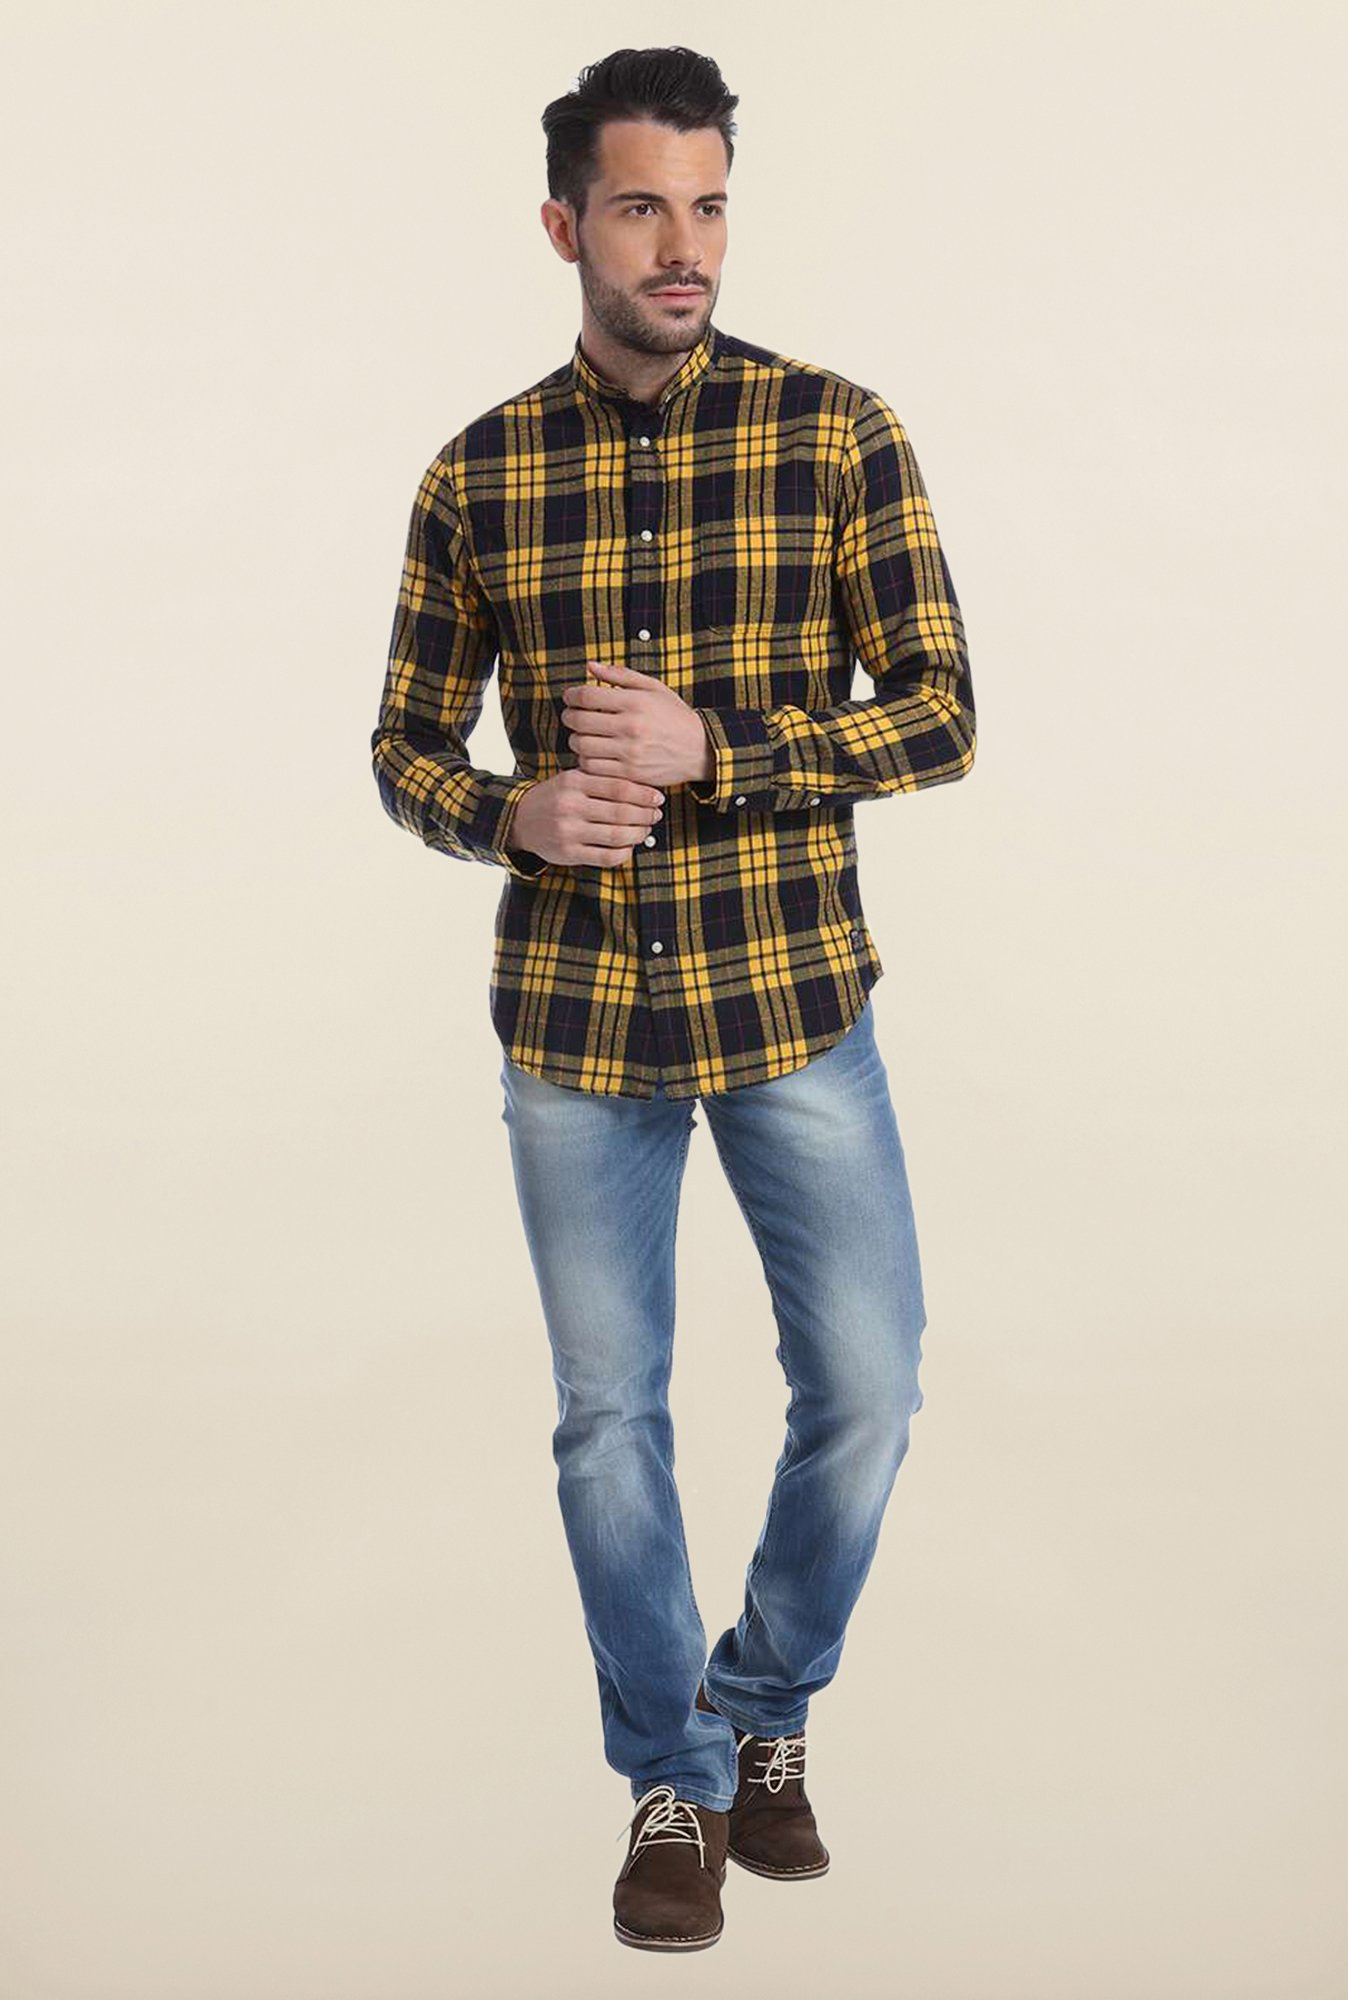 Jack & Jones Yellow And Black Checks Casual Shirt